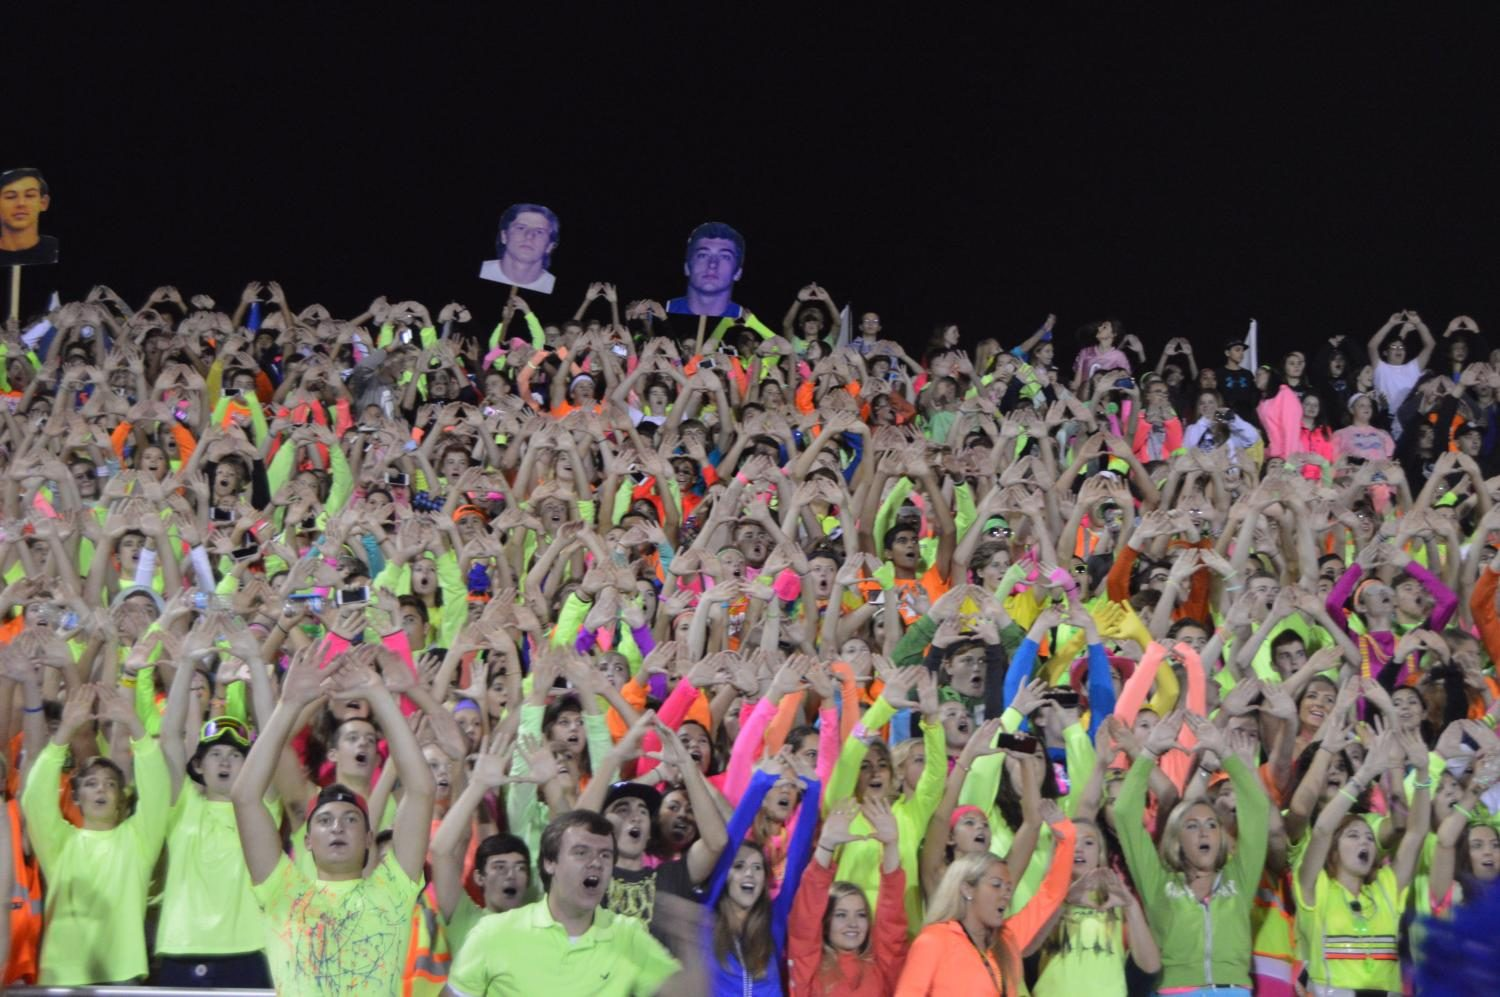 The+Student+Section+cheers+during+a+kickoff+against+Warren.+This+year%27s+Student+Section+had+one+leader+and+several+helpers%2C+but+future+Sections+will+have+approximately+ten+spread+out+over+a+greater+number+of+sports+and+activities.